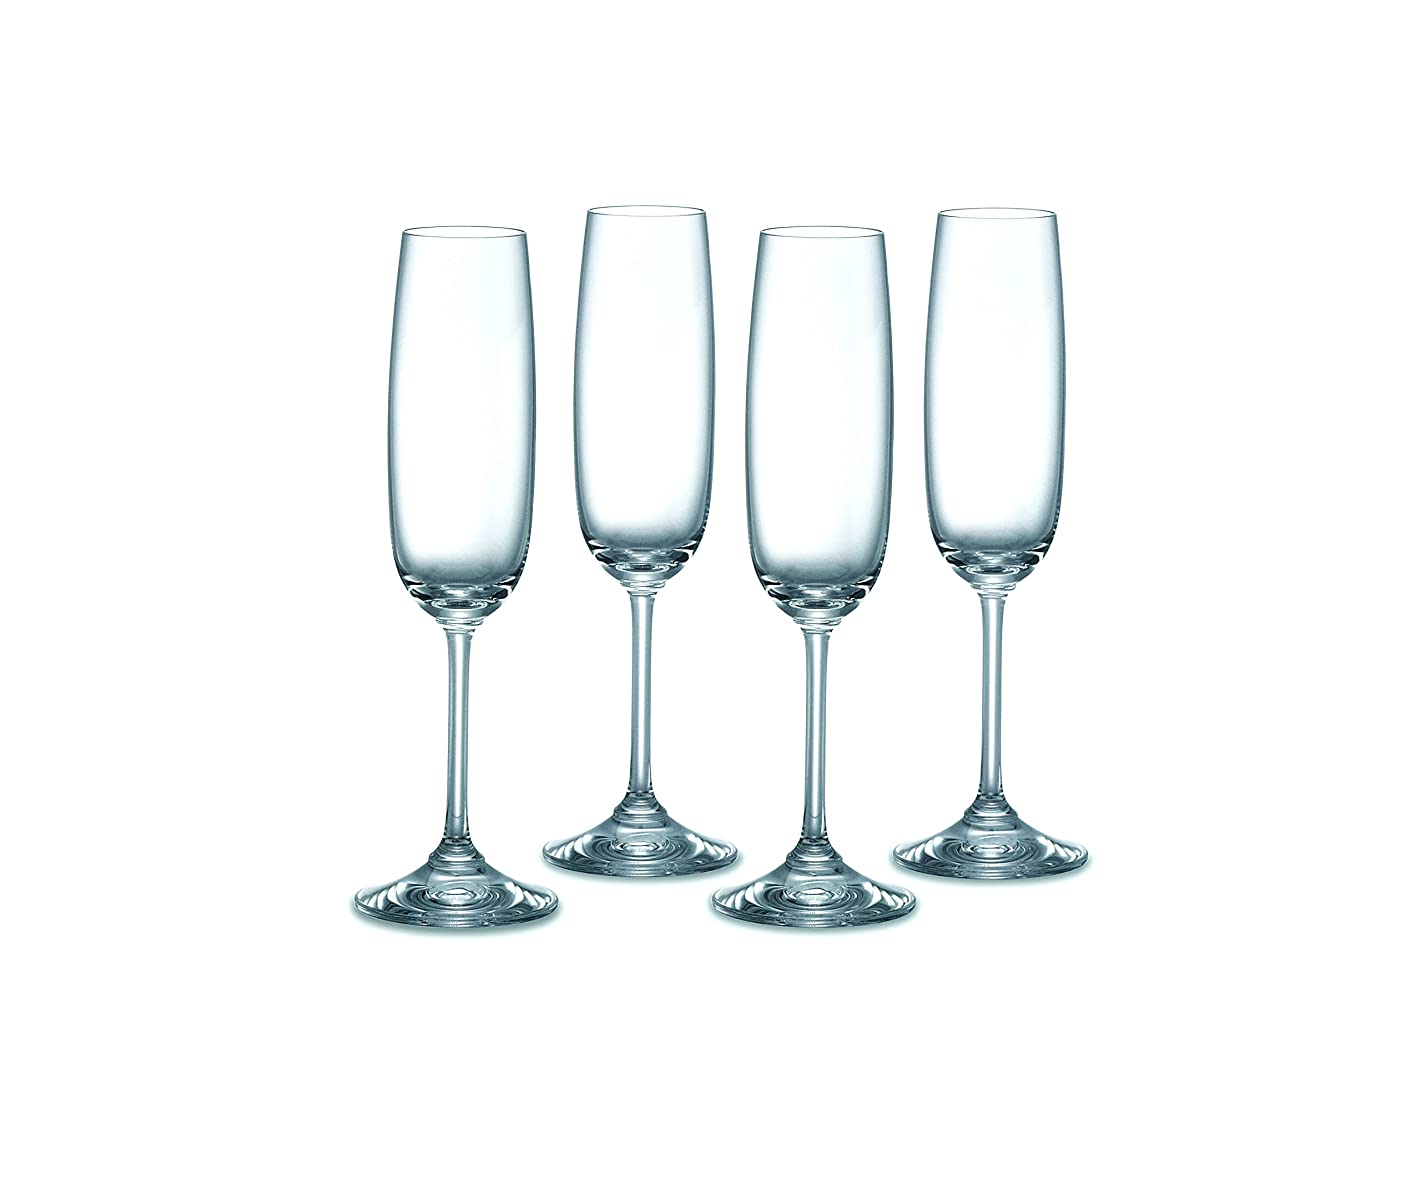 継続中意味貼り直すMarquis by Waterford Vintage Champagne Flutes, Set of 4 by Waterford